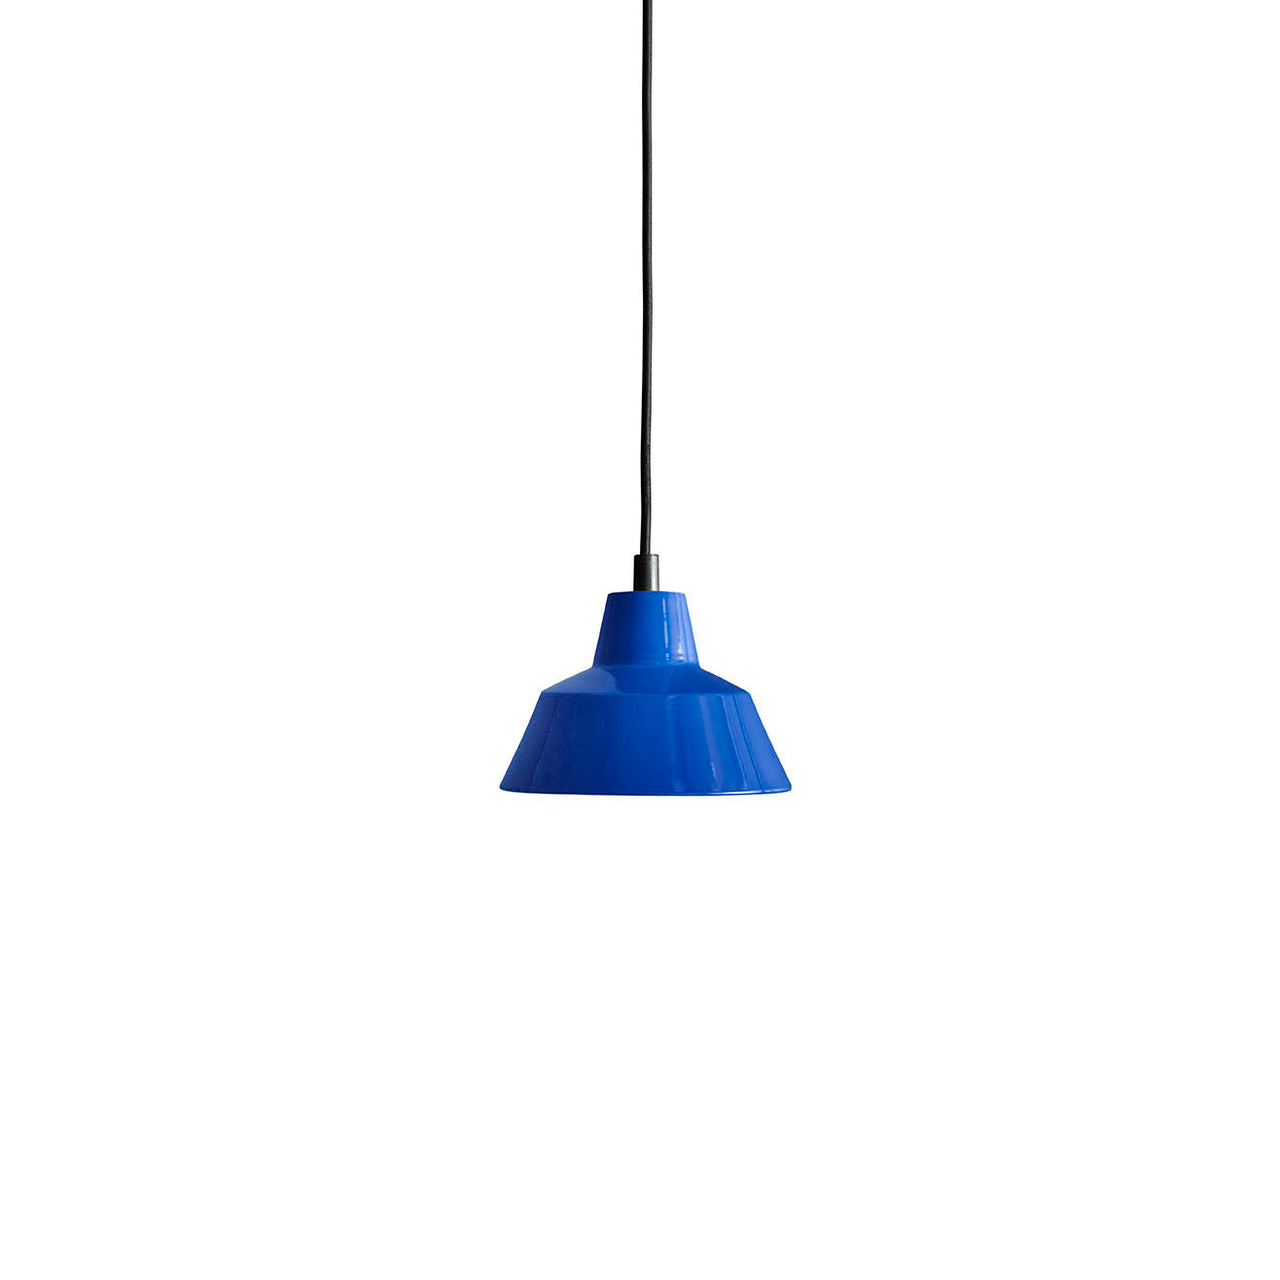 Workshop Pendant Lamp W1: Blue